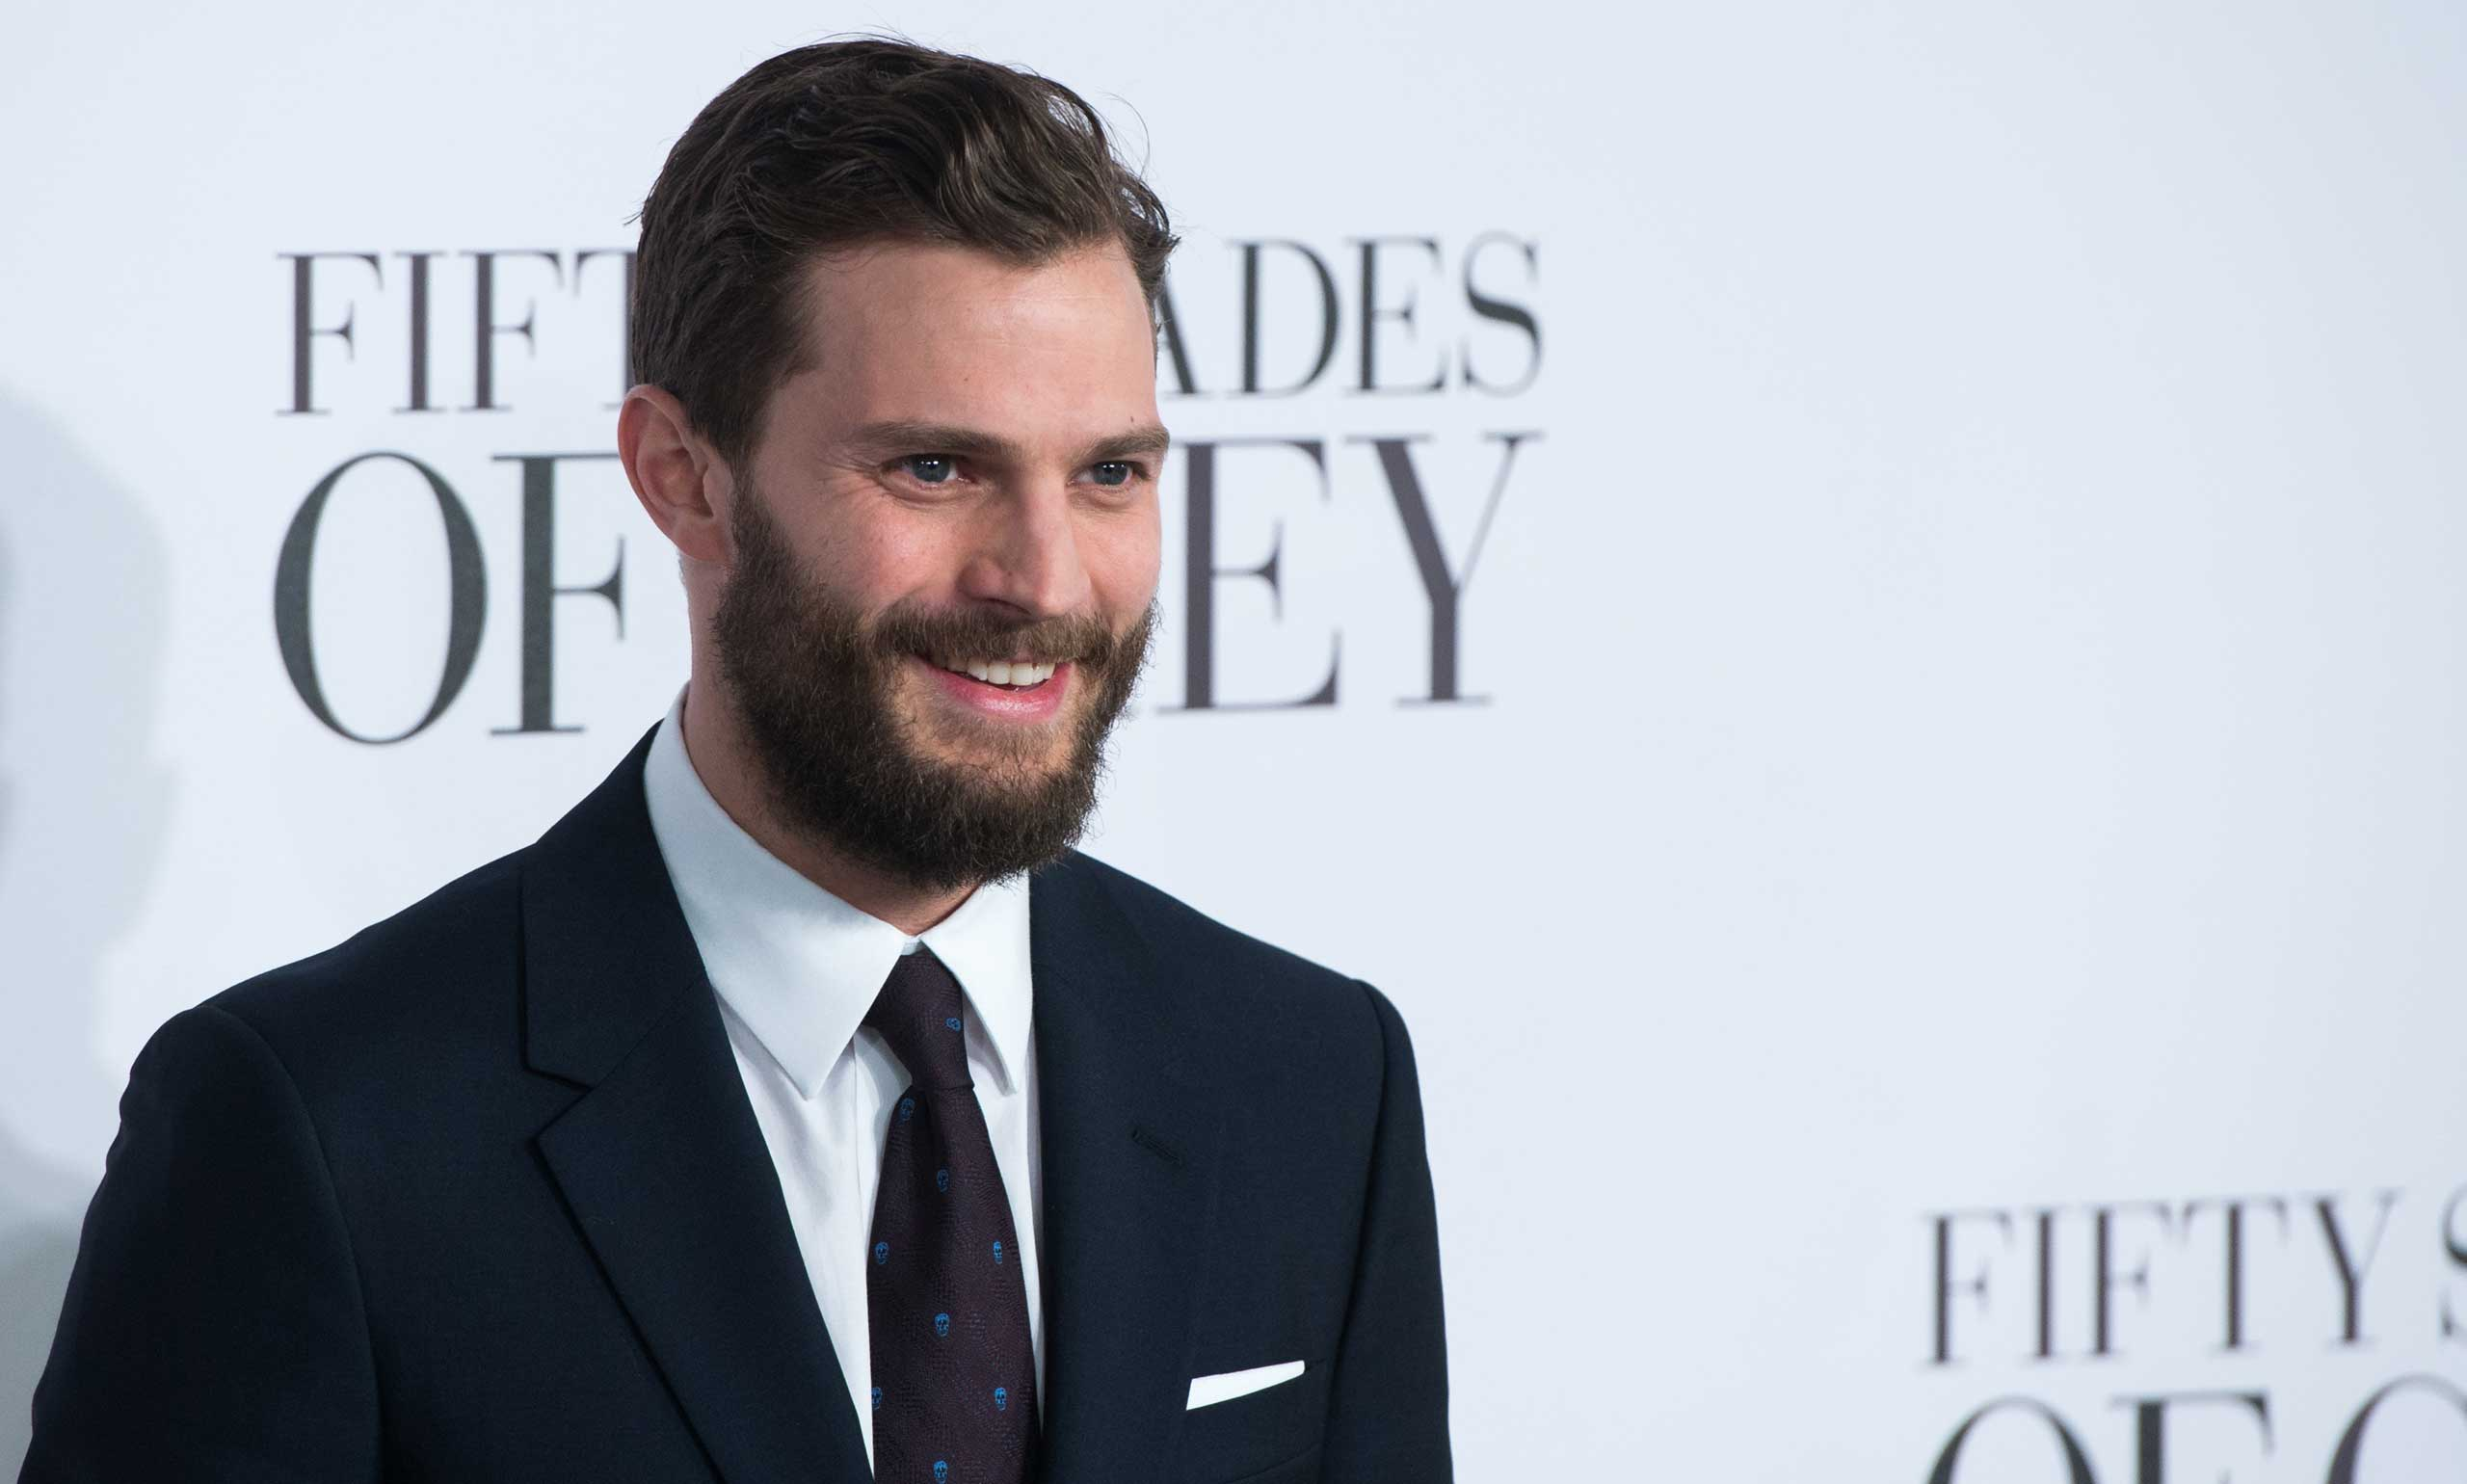 Jamie Dornan attends the UK Premiere of  Fifty Shades Of Grey  at Odeon Leicester Square in London on Feb. 12, 2015.